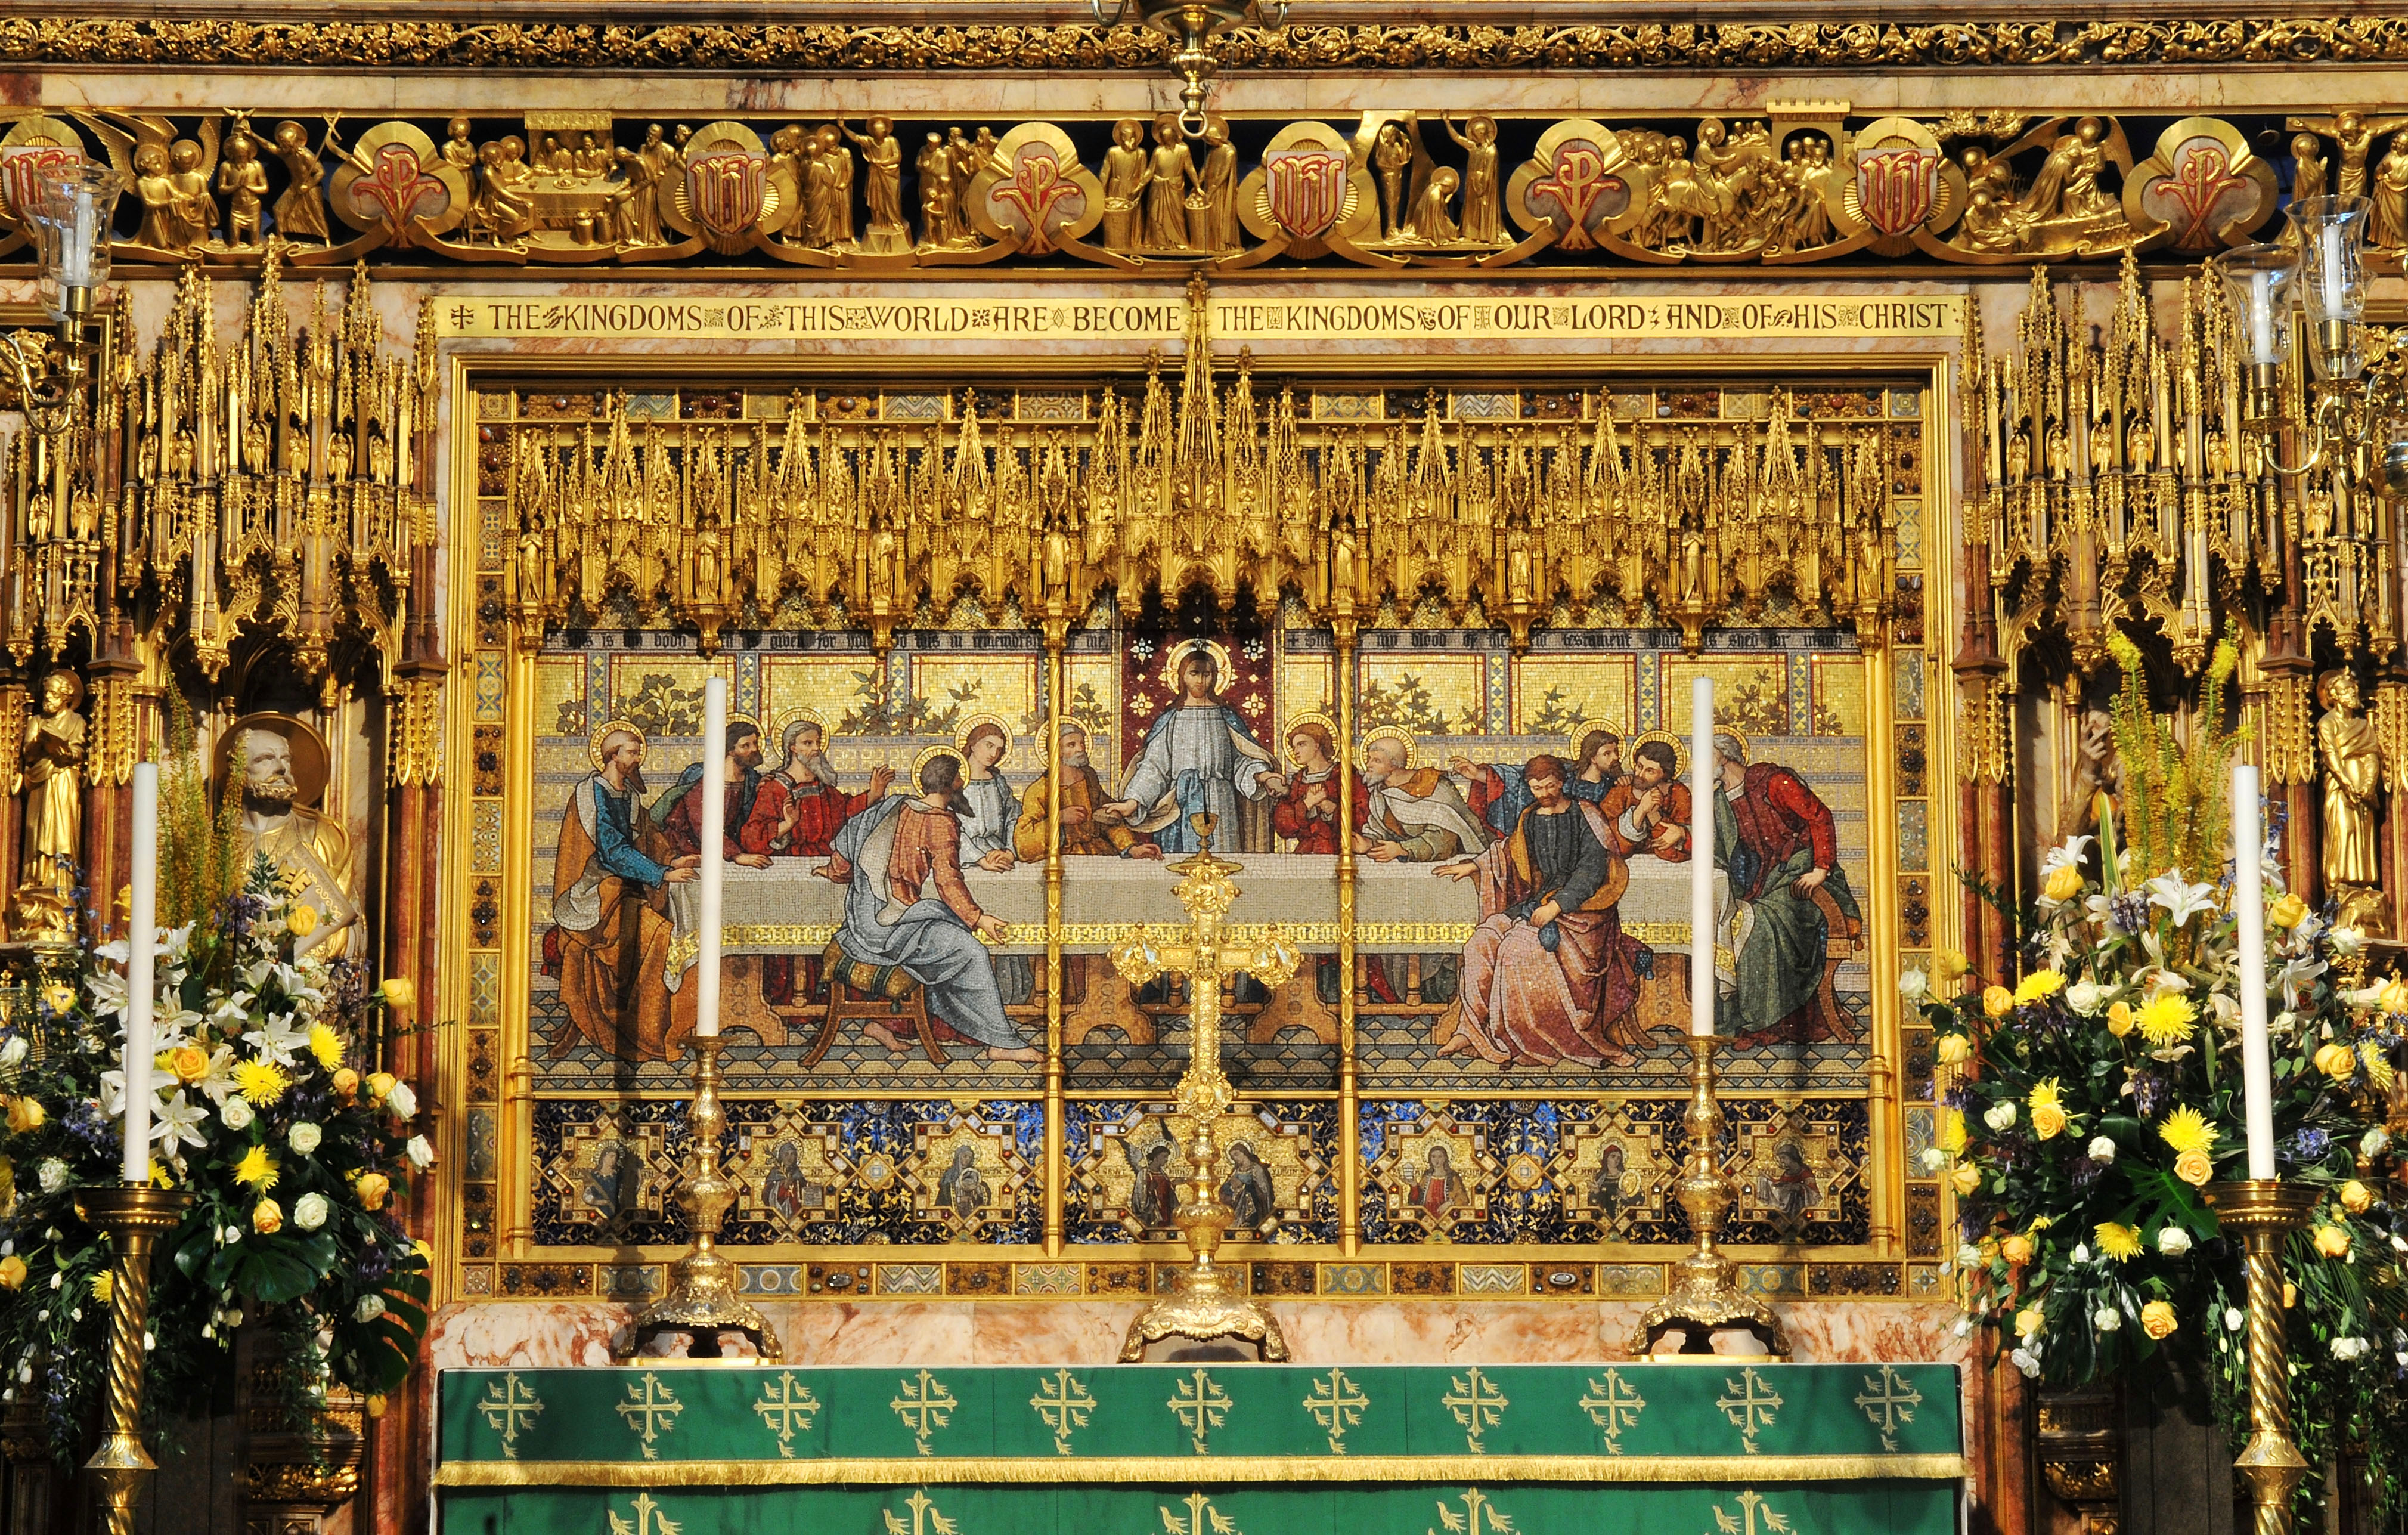 The High Altar - Altar screen